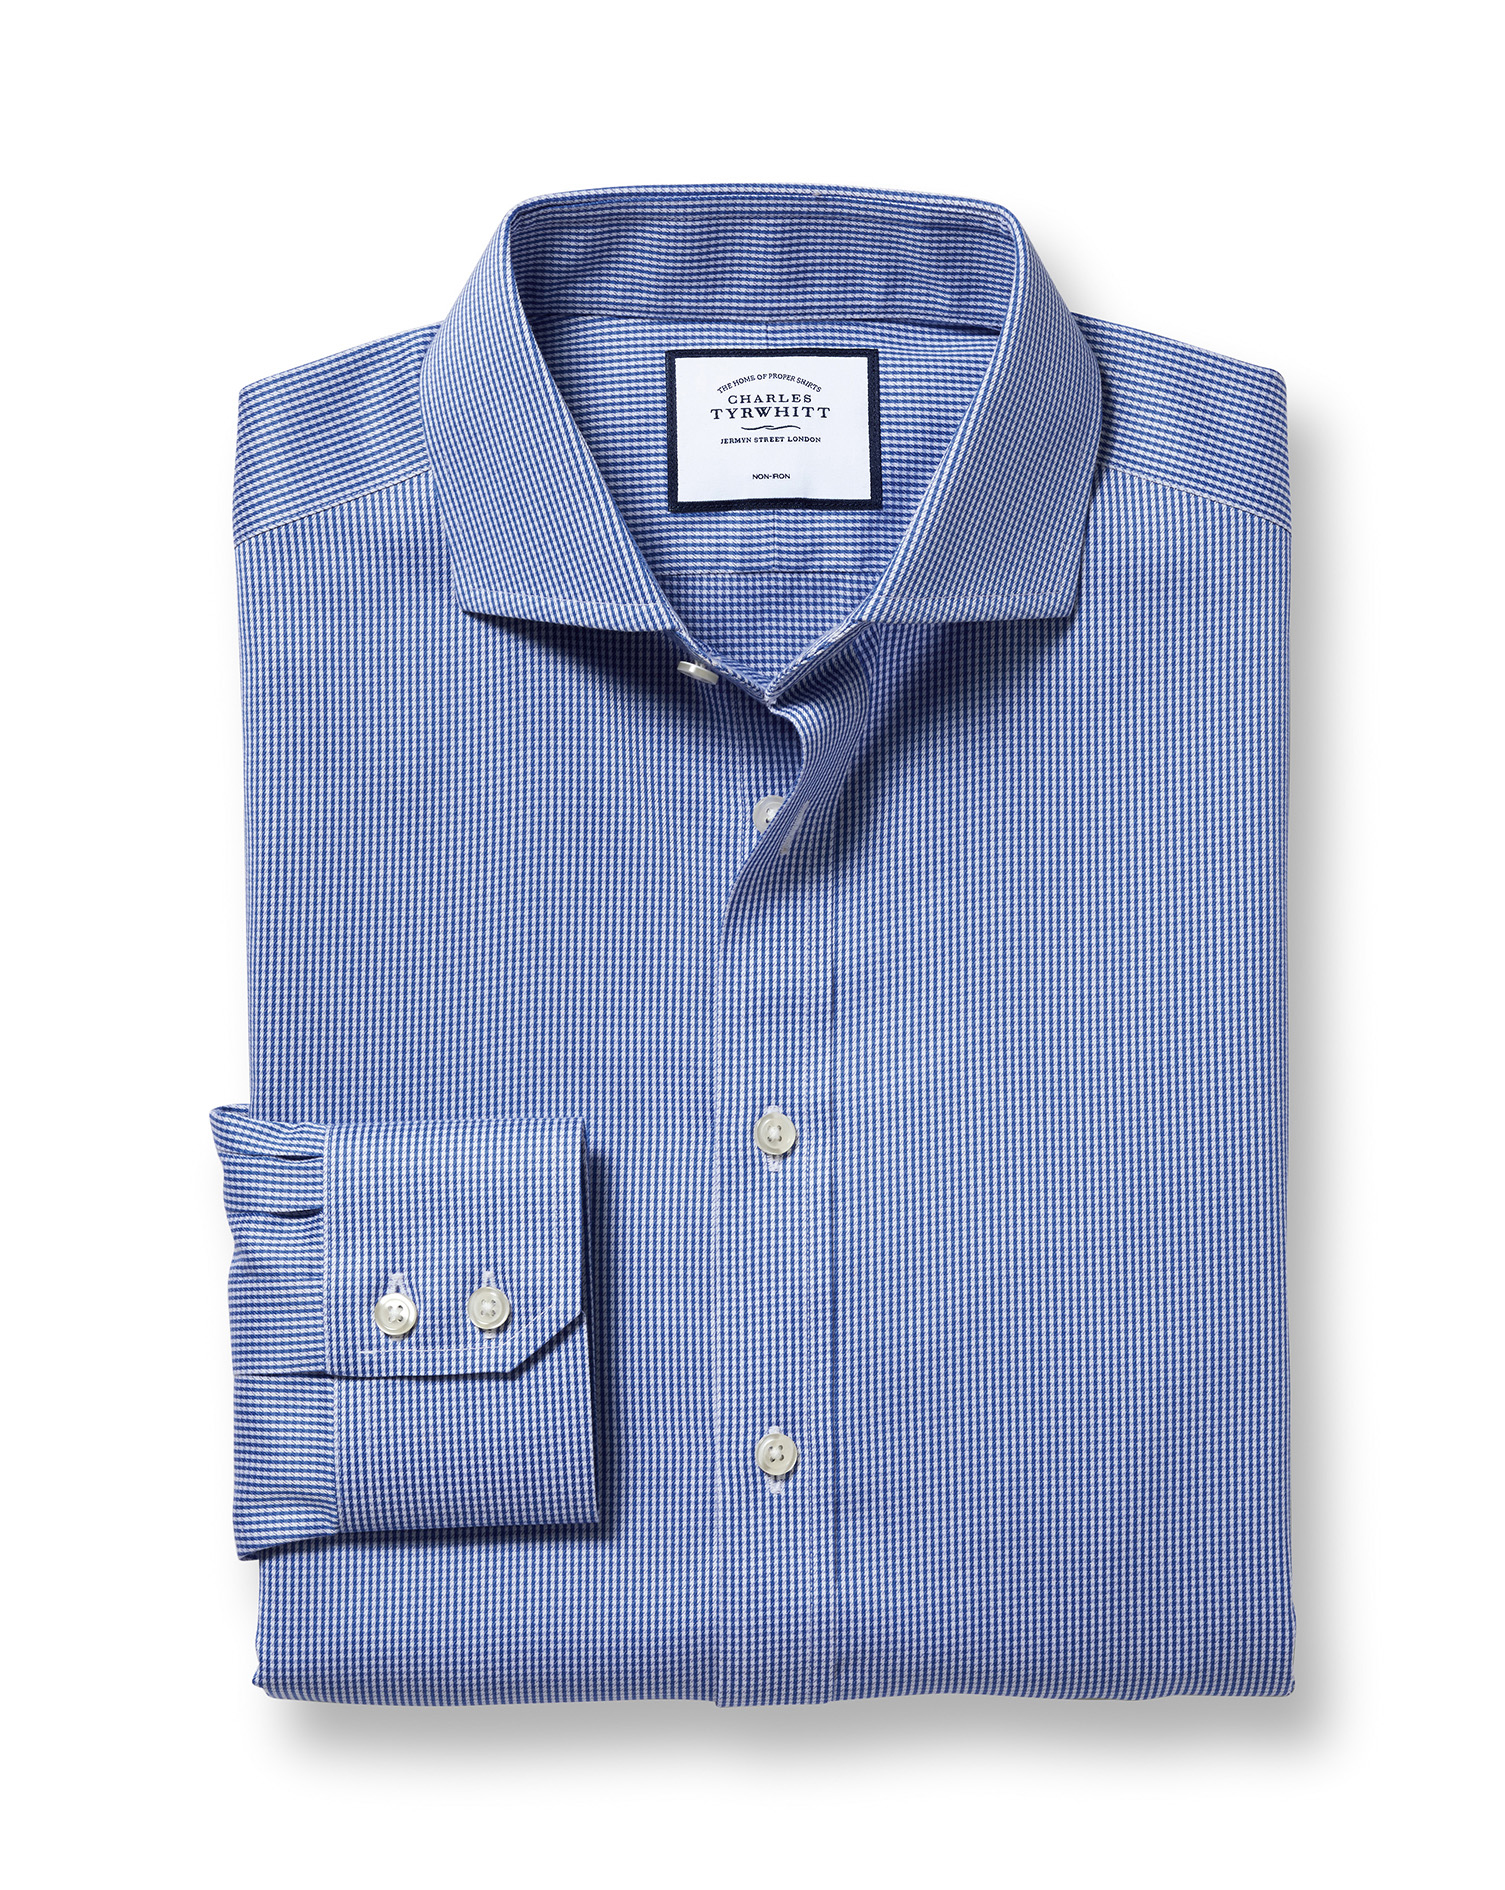 Extra Slim Fit Cutaway Non-Iron Puppytooth Royal Blue Cotton Formal Shirt Single Cuff Size 16/35 by